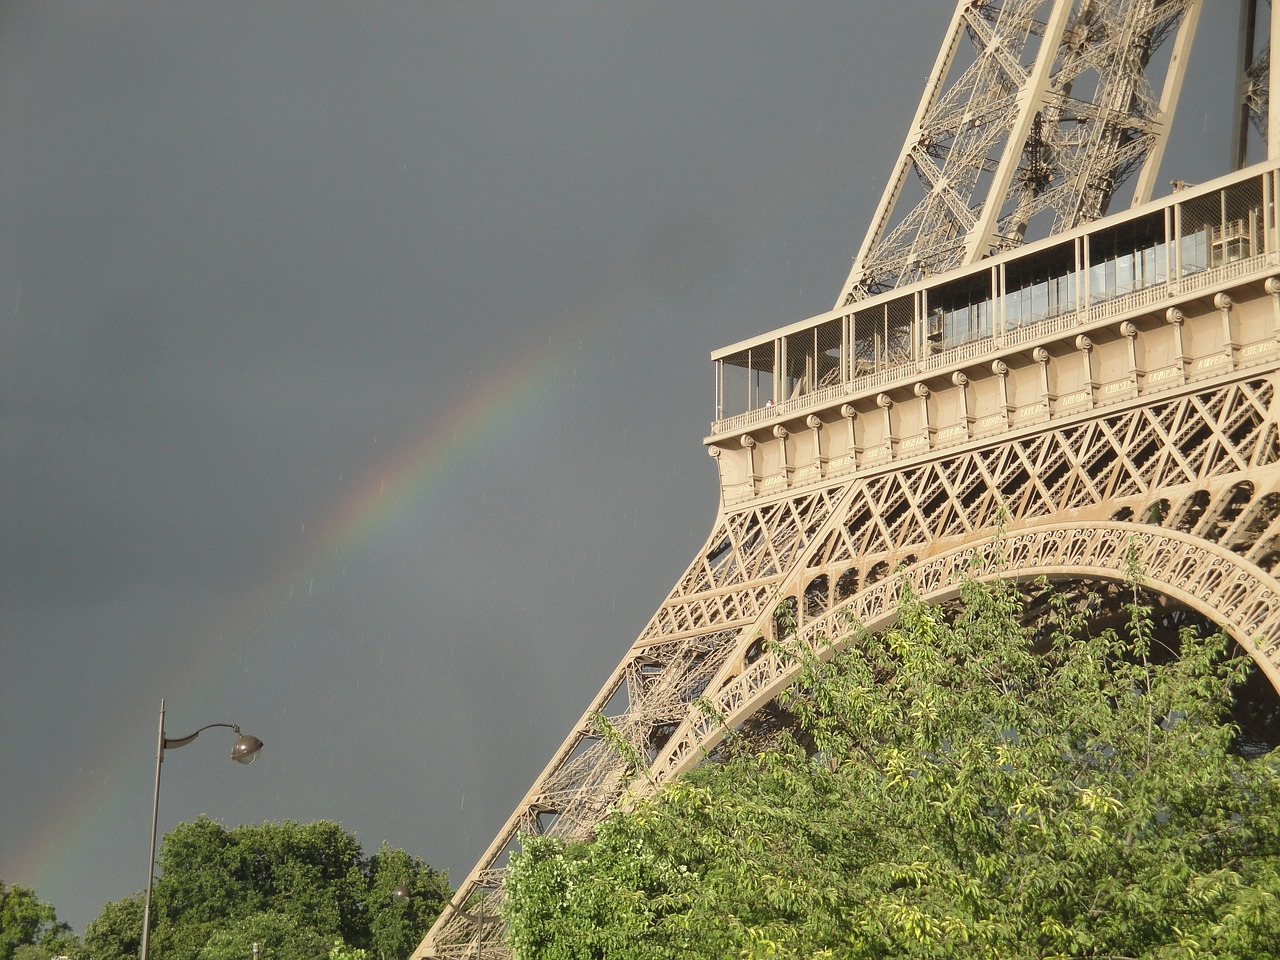 eiffel tower,paris,eiffel,iron,france,rainbow,monument,tower,storm,sky,free pictures, free photos, free images, royalty free, free illustrations, public domain